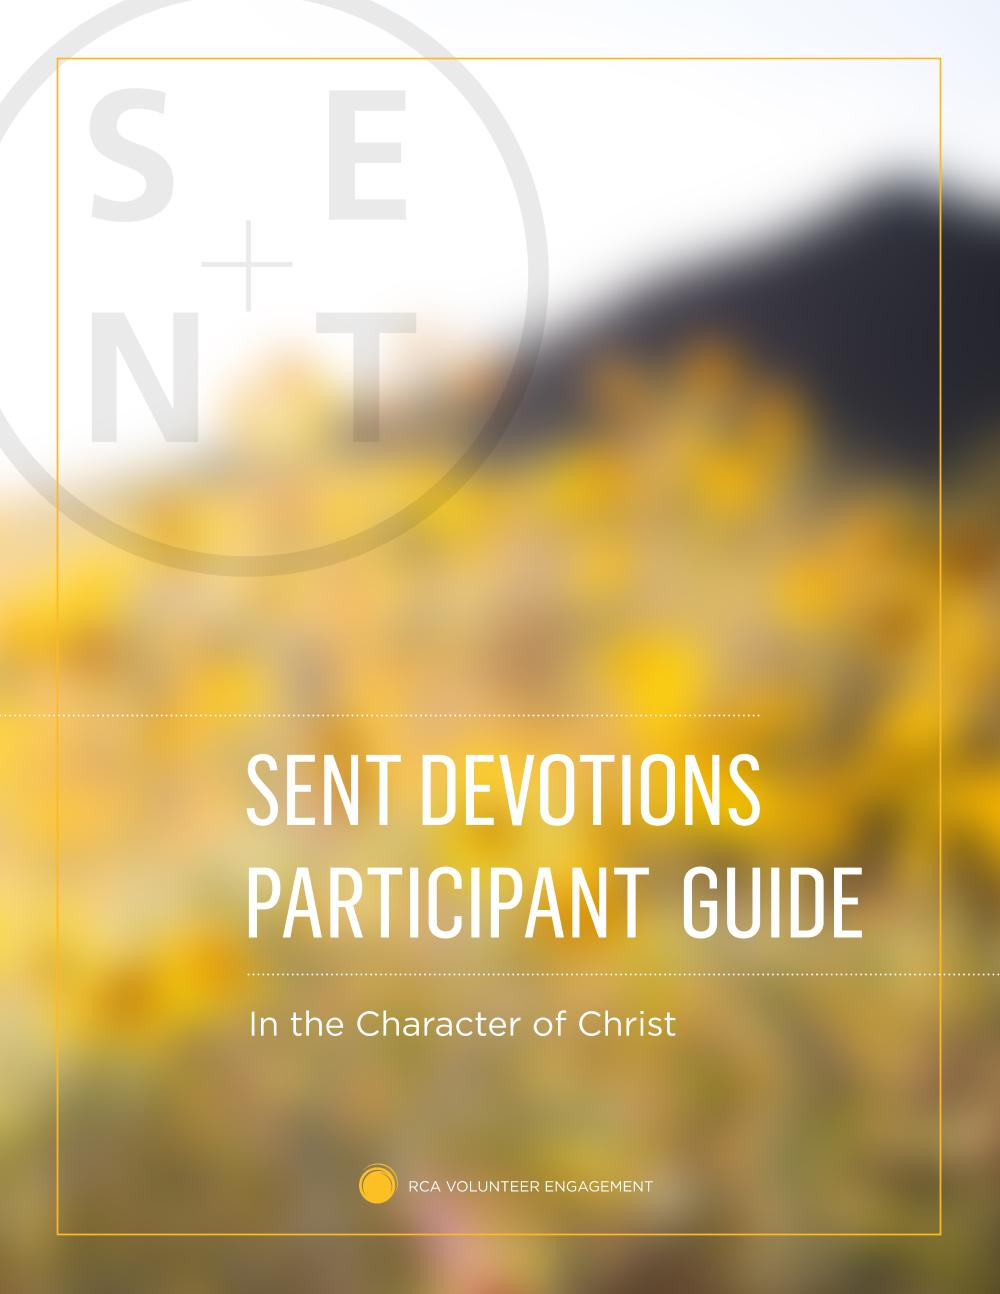 Image of SENT devotions guide